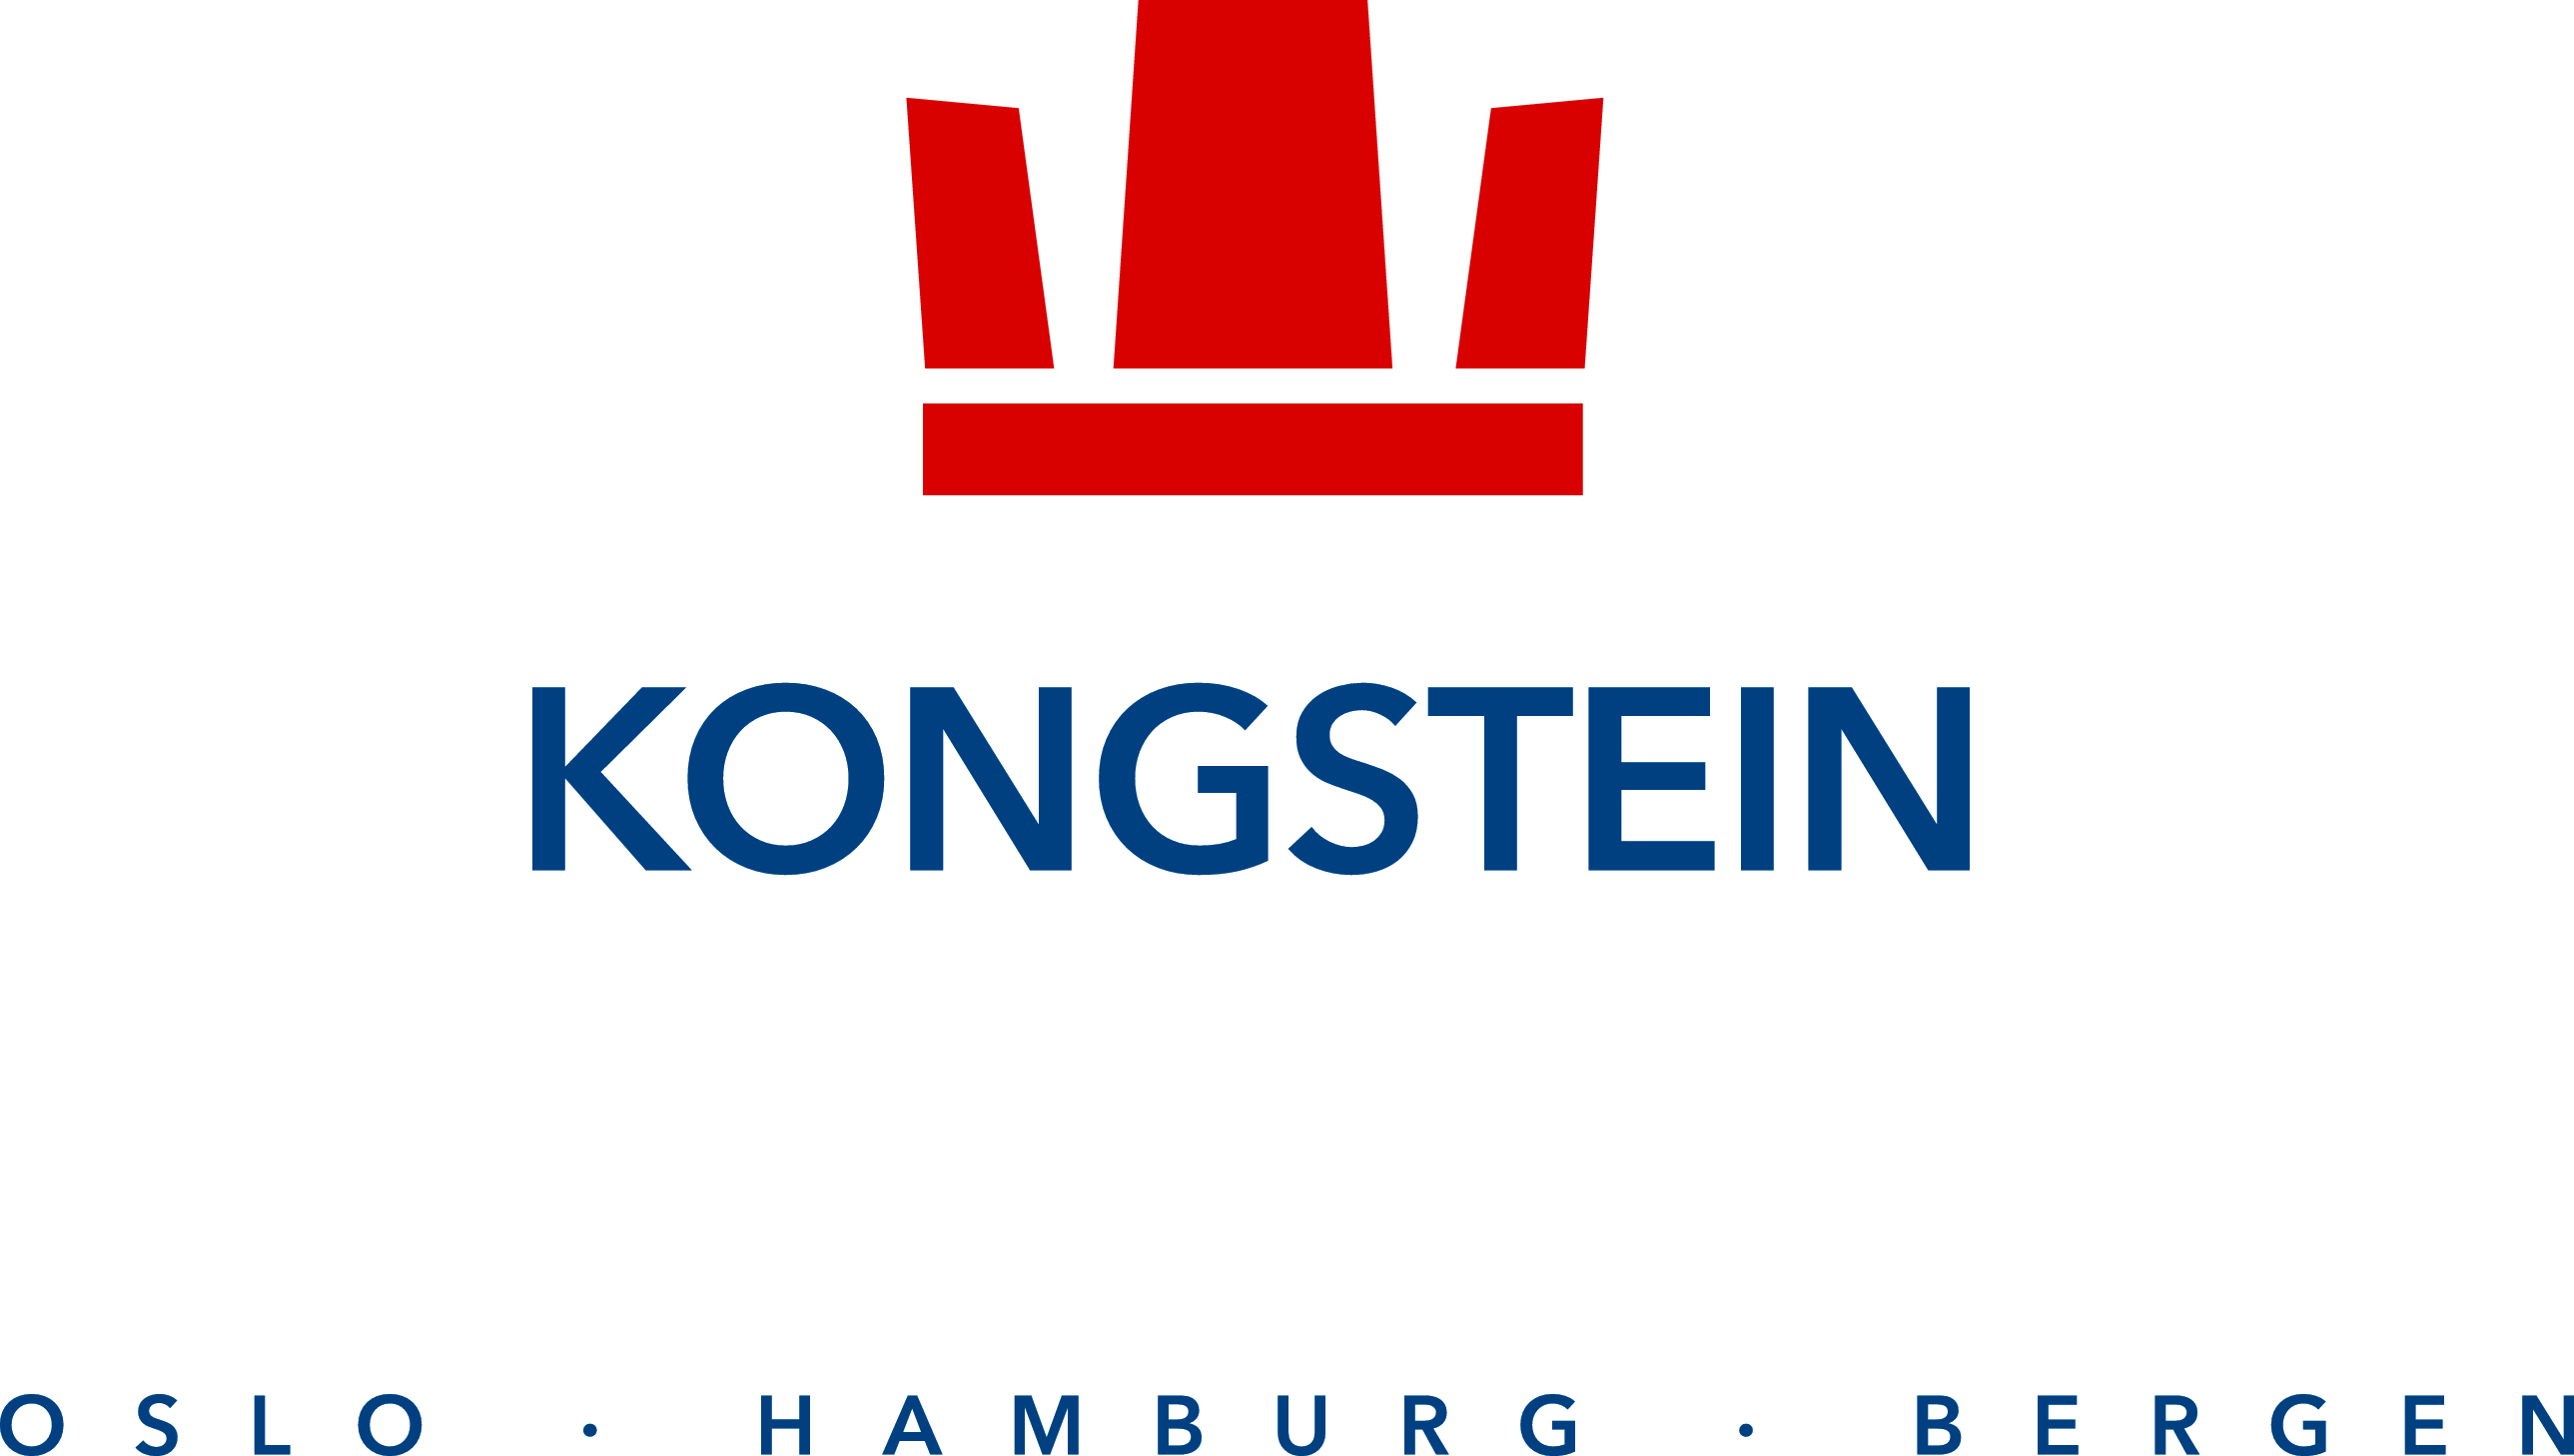 Kongstein AS/GmbH